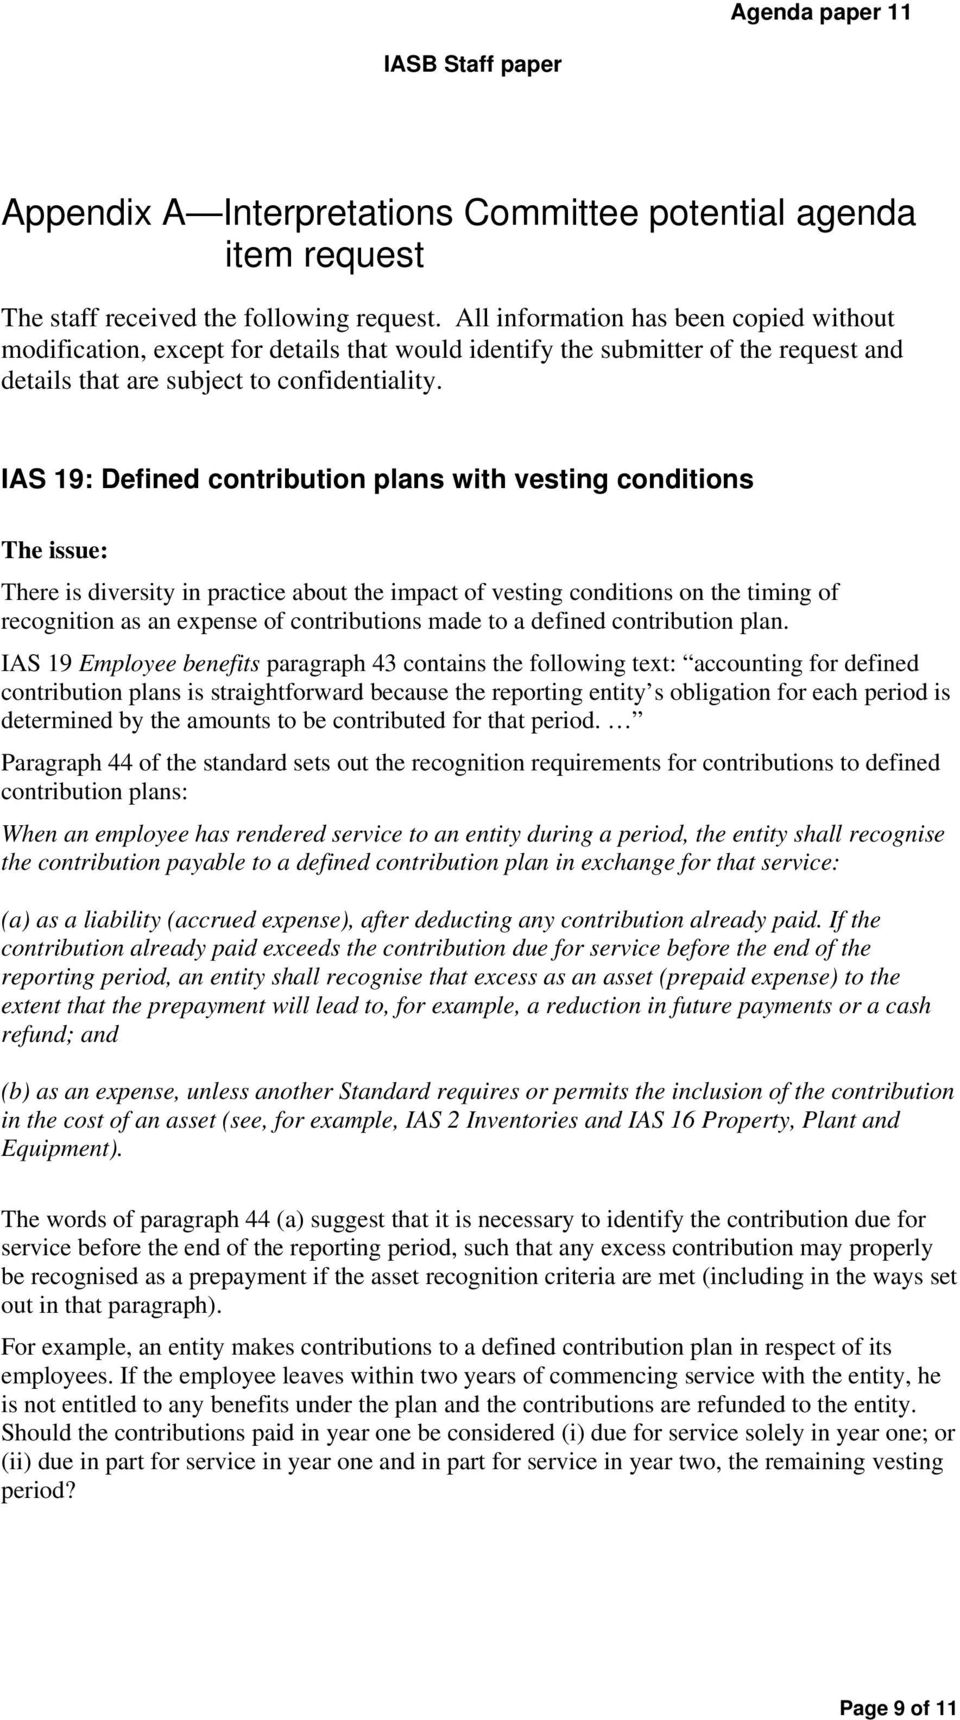 IAS 19: Defined contribution plans with vesting conditions The issue: There is diversity in practice about the impact of vesting conditions on the timing of recognition as an expense of contributions